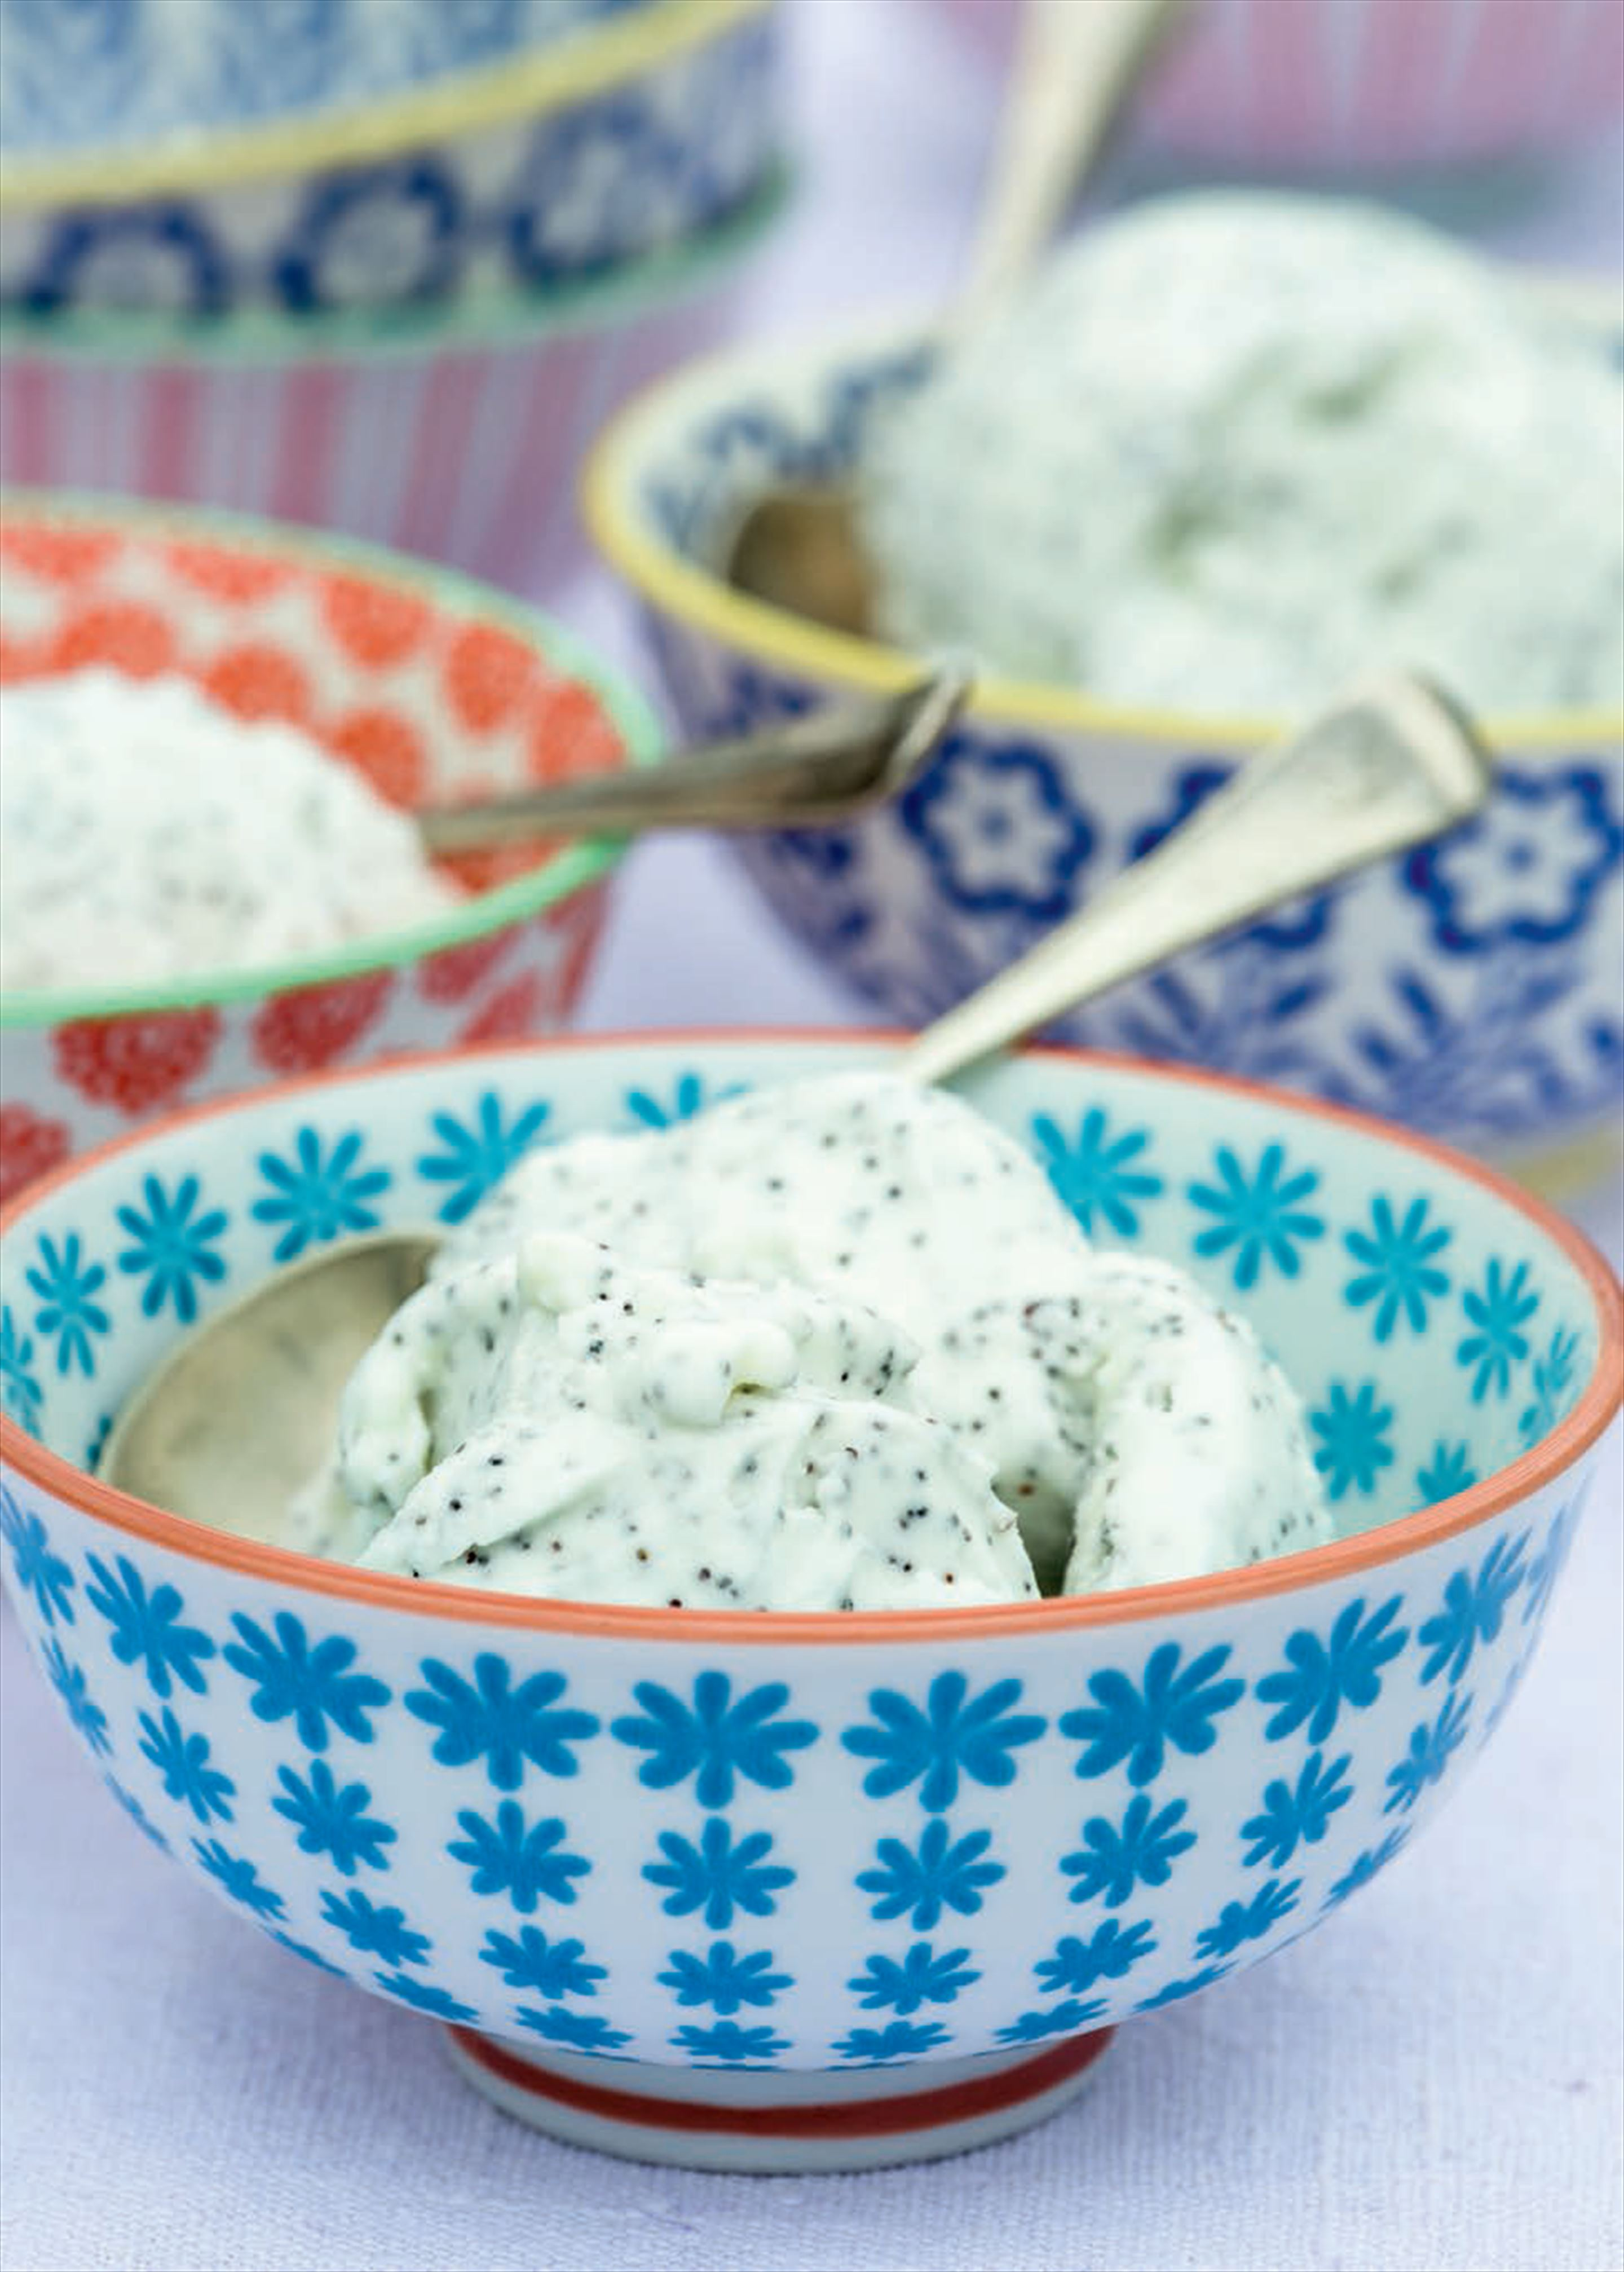 Cardamom and poppy seed ice cream